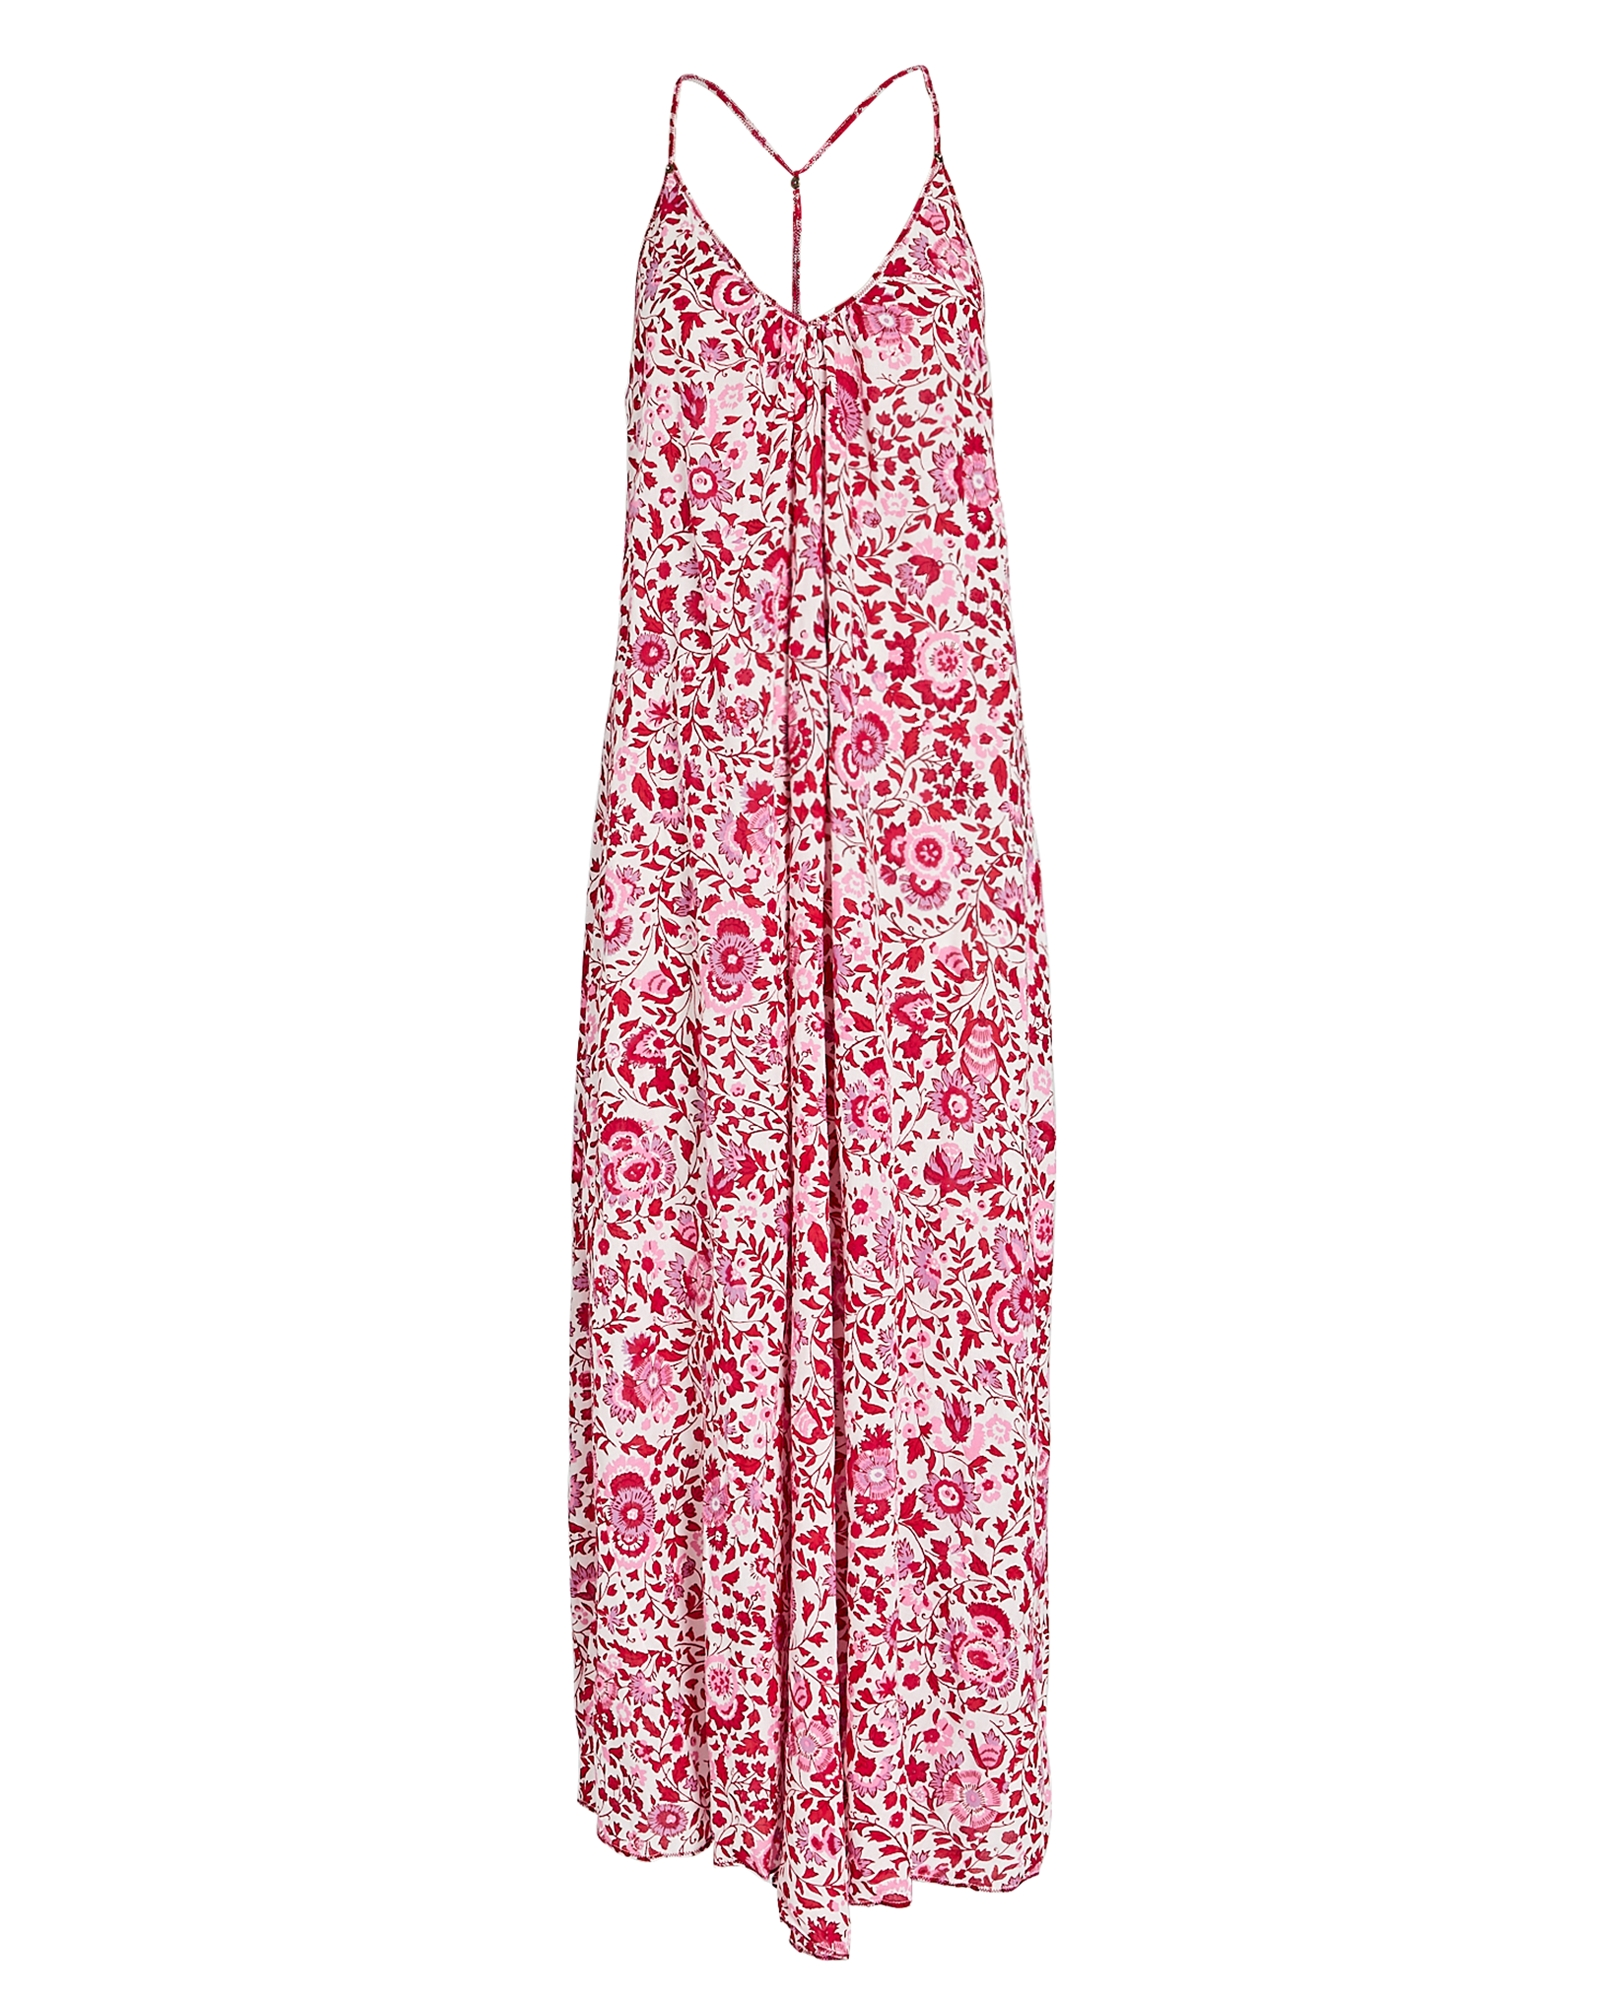 Poupette St Barth POUPETTE ST BARTH FELICIA SLEEVELESS FLORAL MAXI DRESS